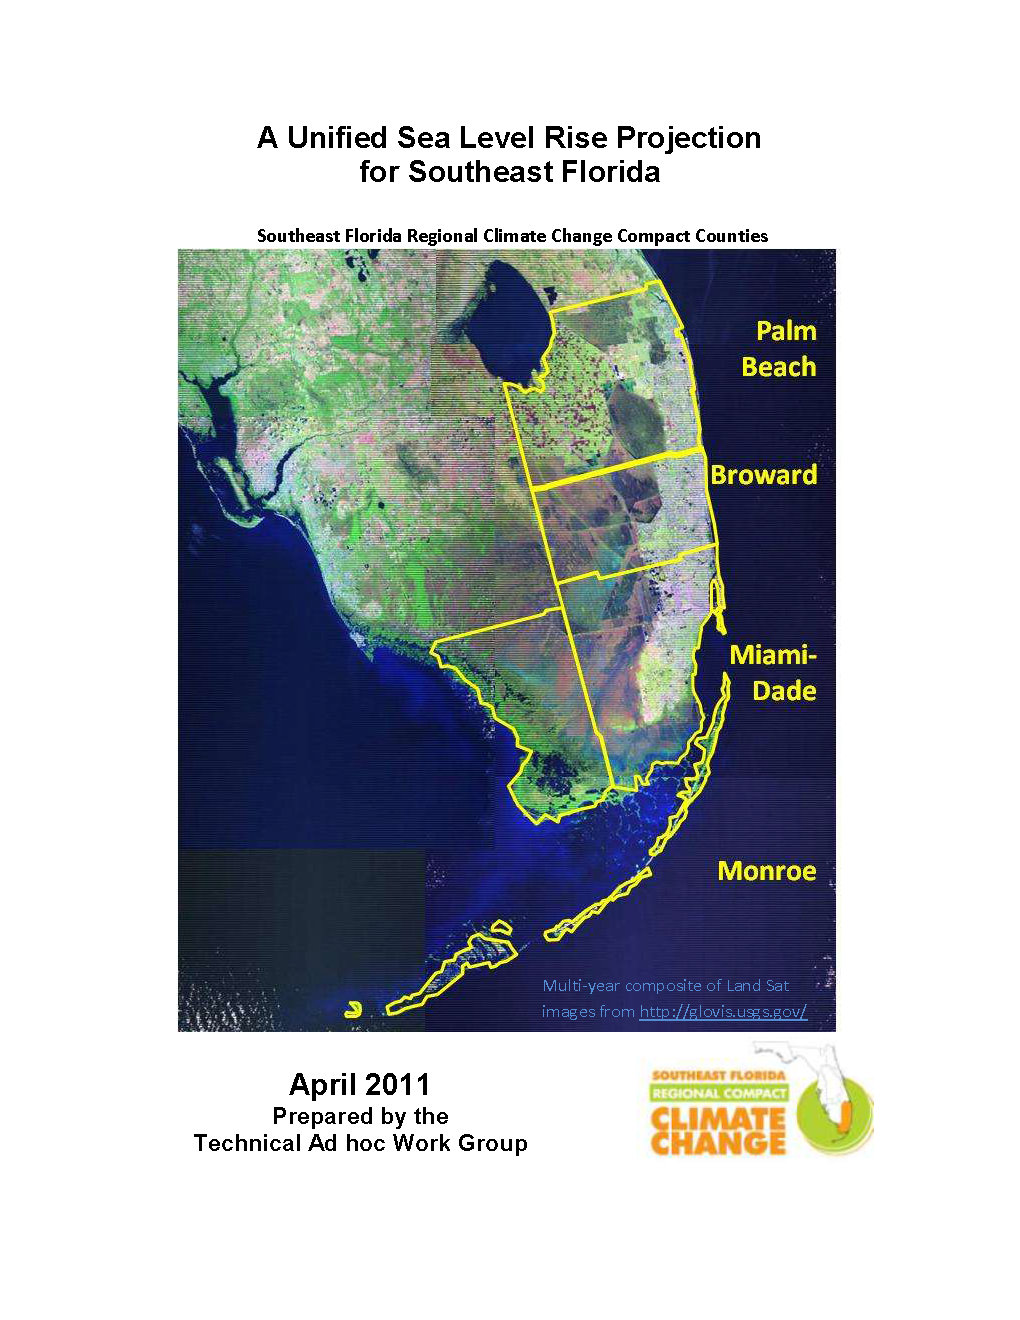 http://www.southeastfloridaclimatecompact.org//wp-content/uploads/2014/09/sea-level-rise.png